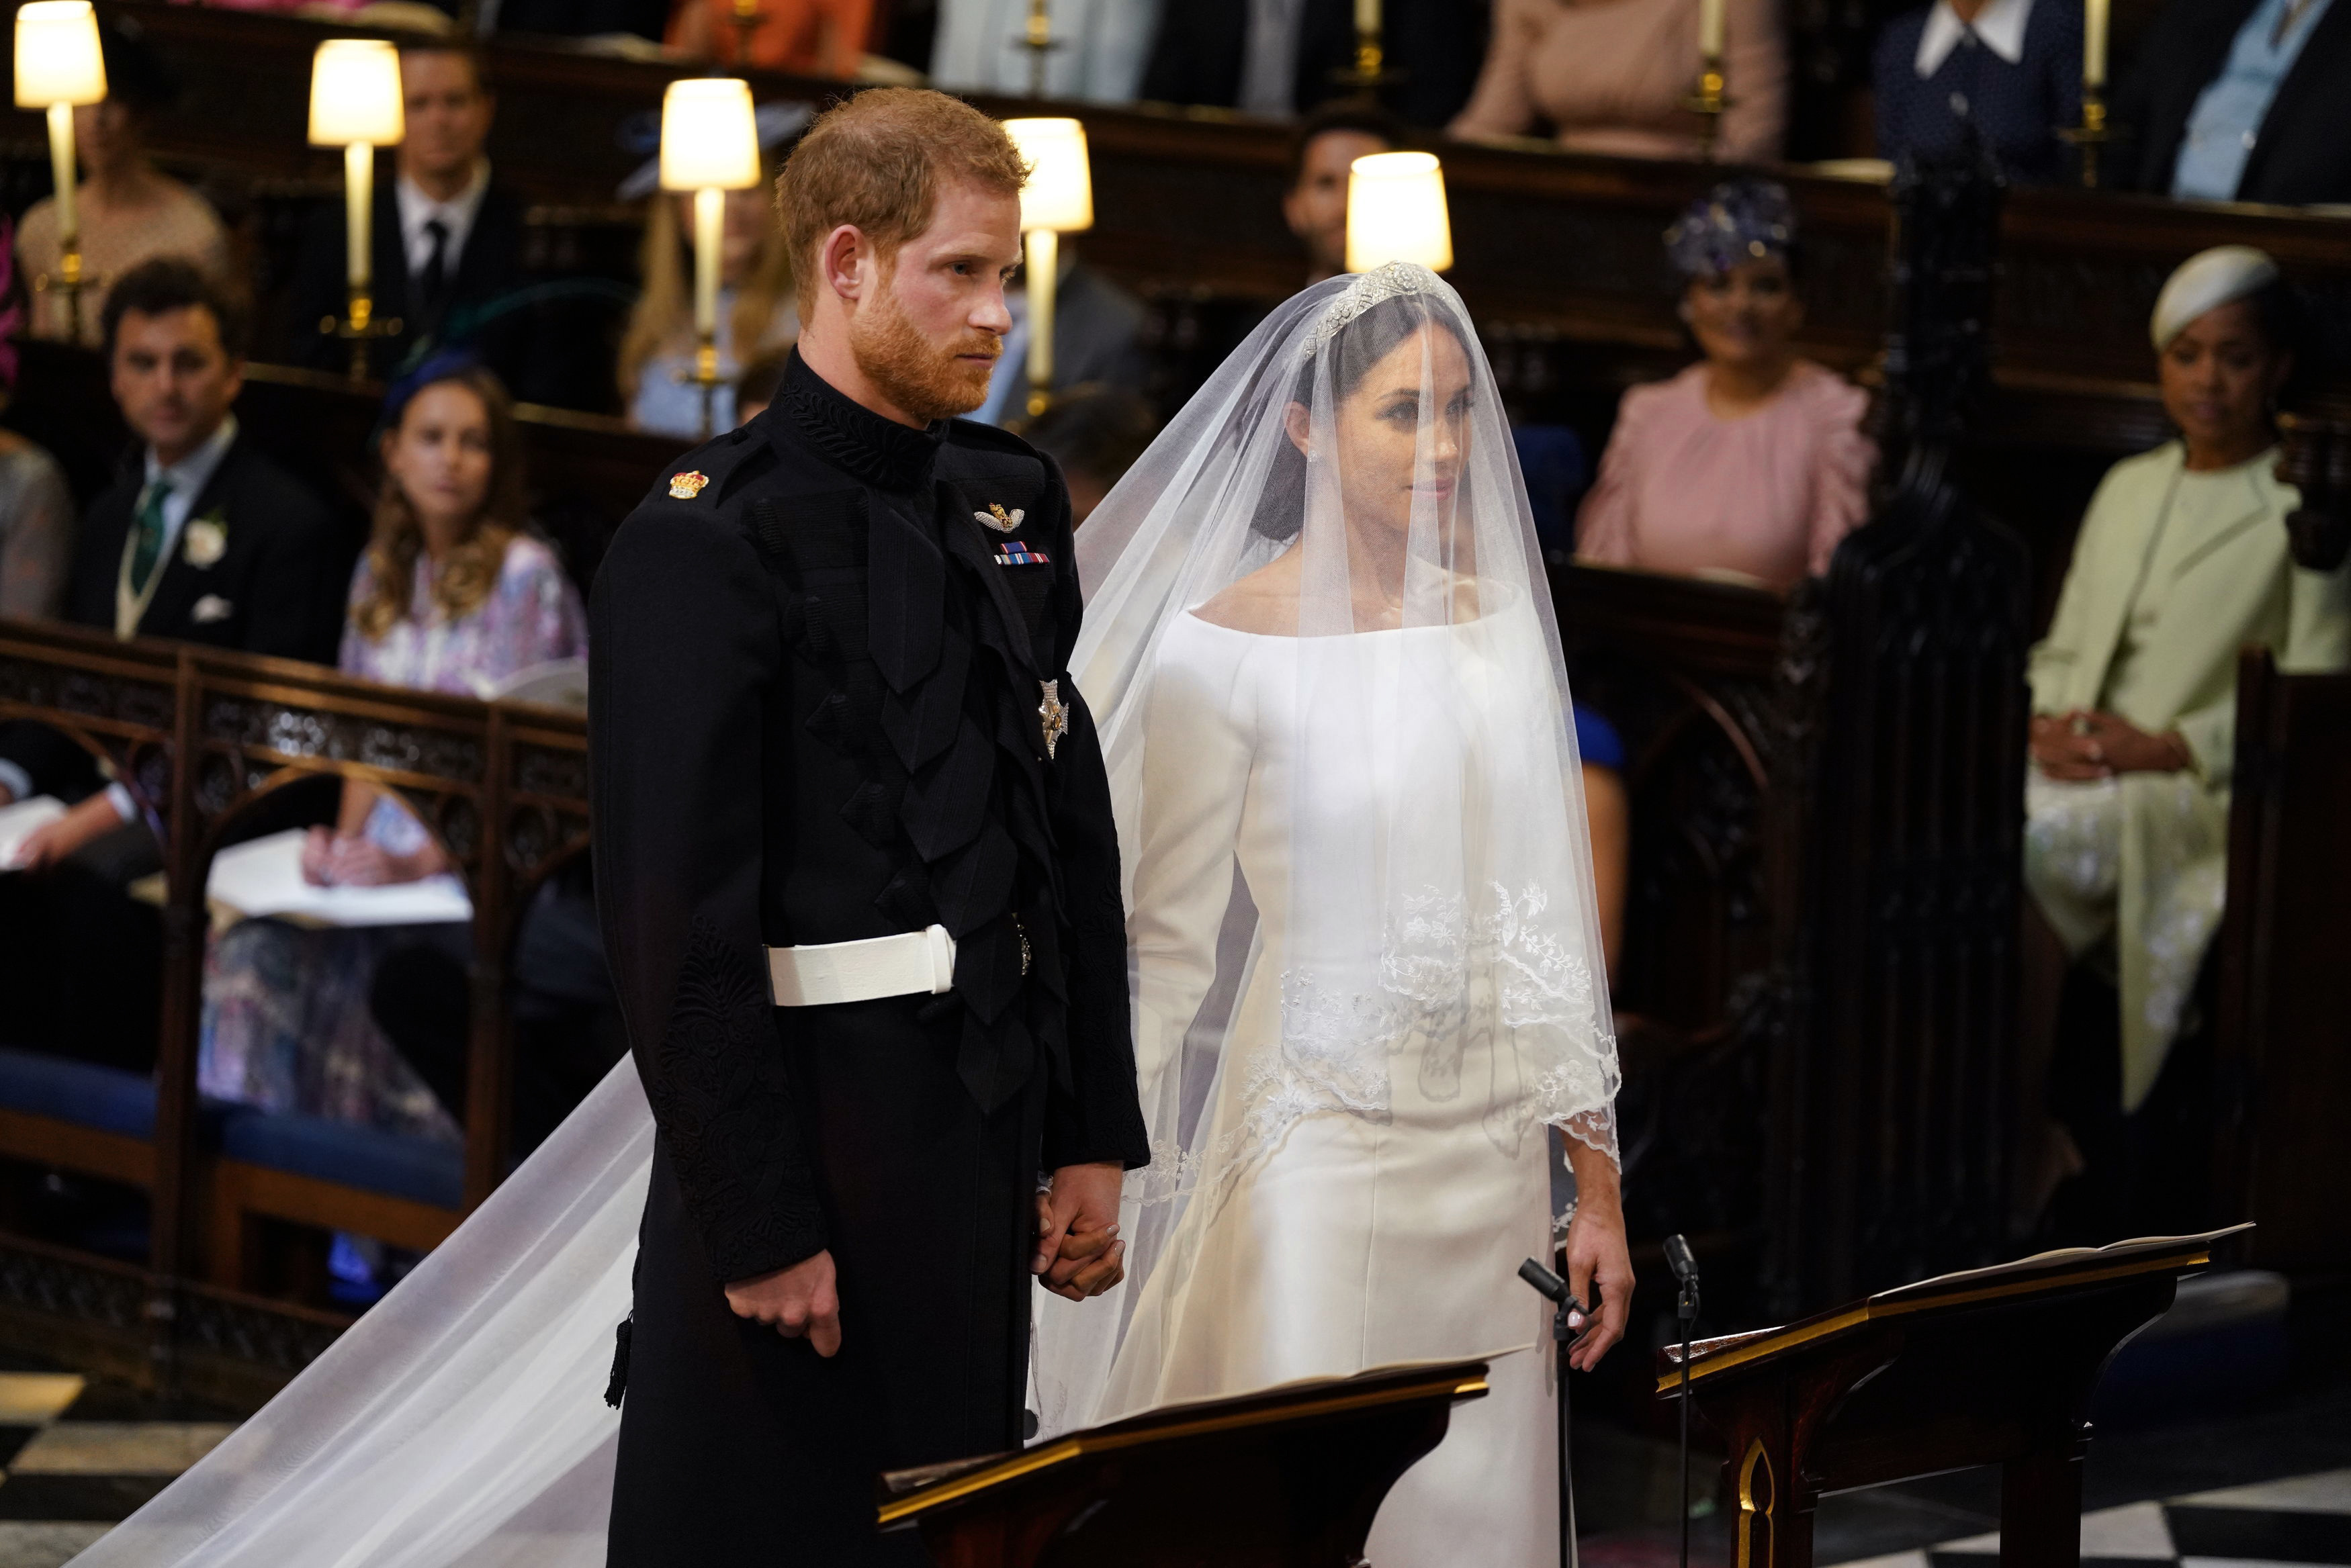 Royal Wedding Harry and Meghan standing at the alter in St George's Chapel, Windsor Castle